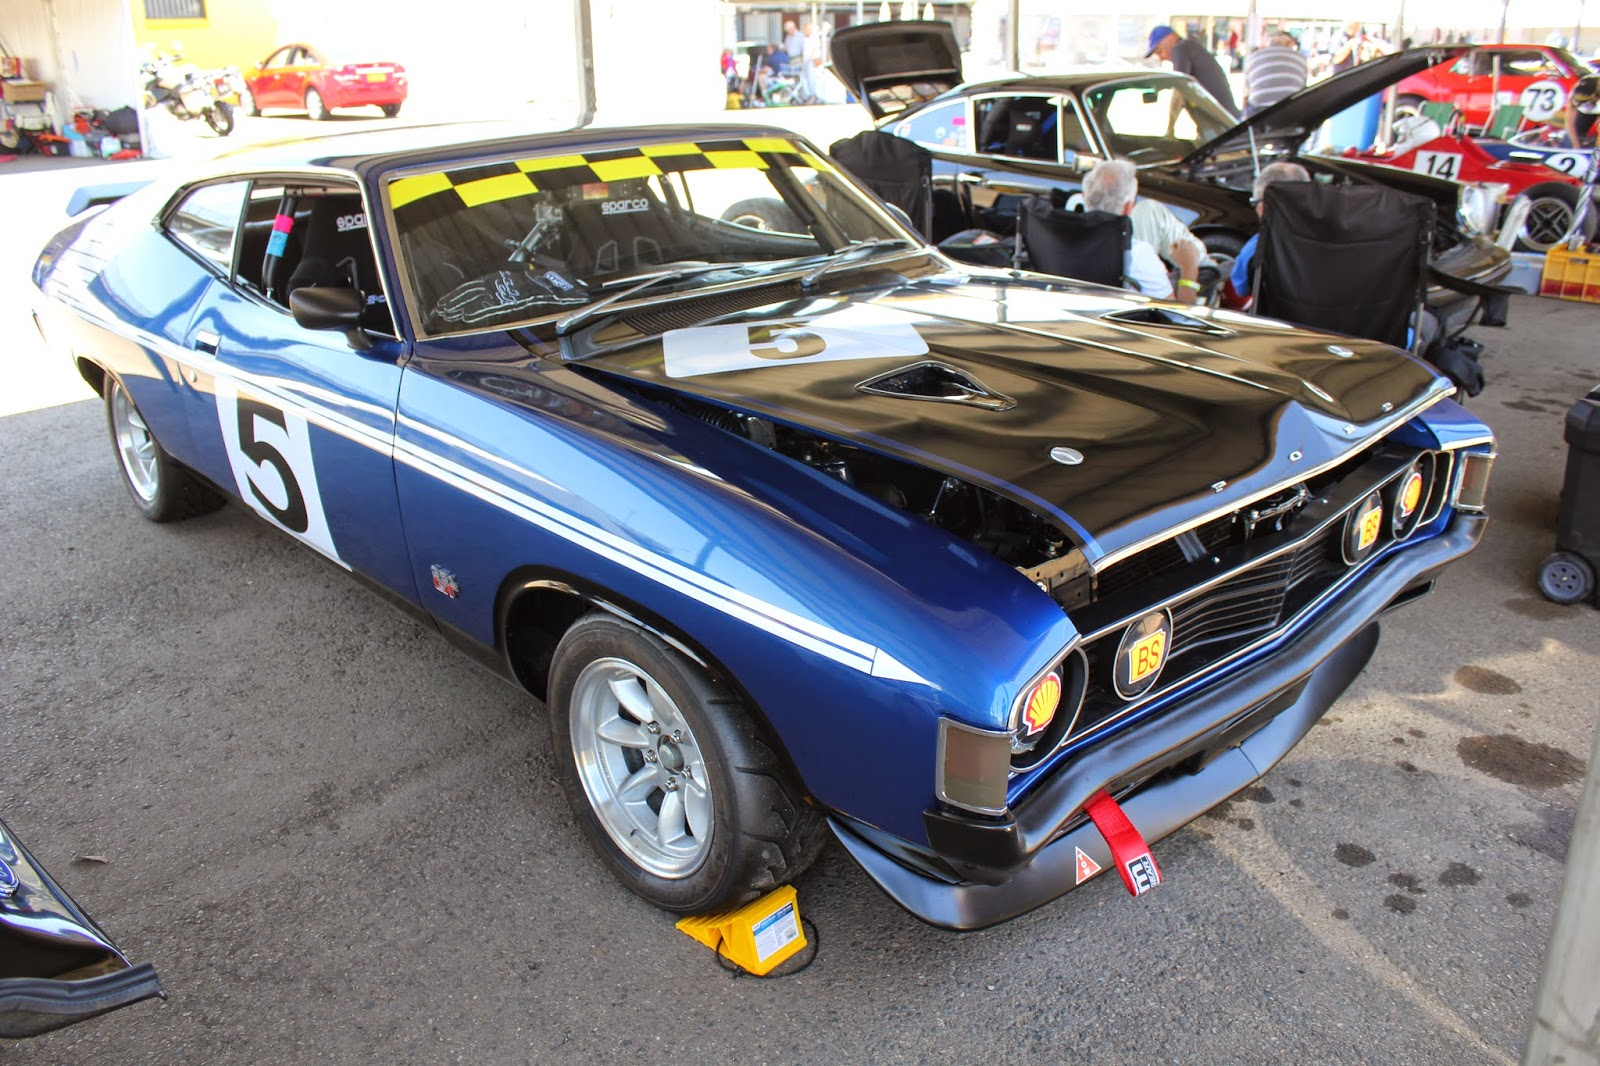 Aussie Old Parked Cars: 1973 Ford XA Falcon GT 351 Hardtop Race Car